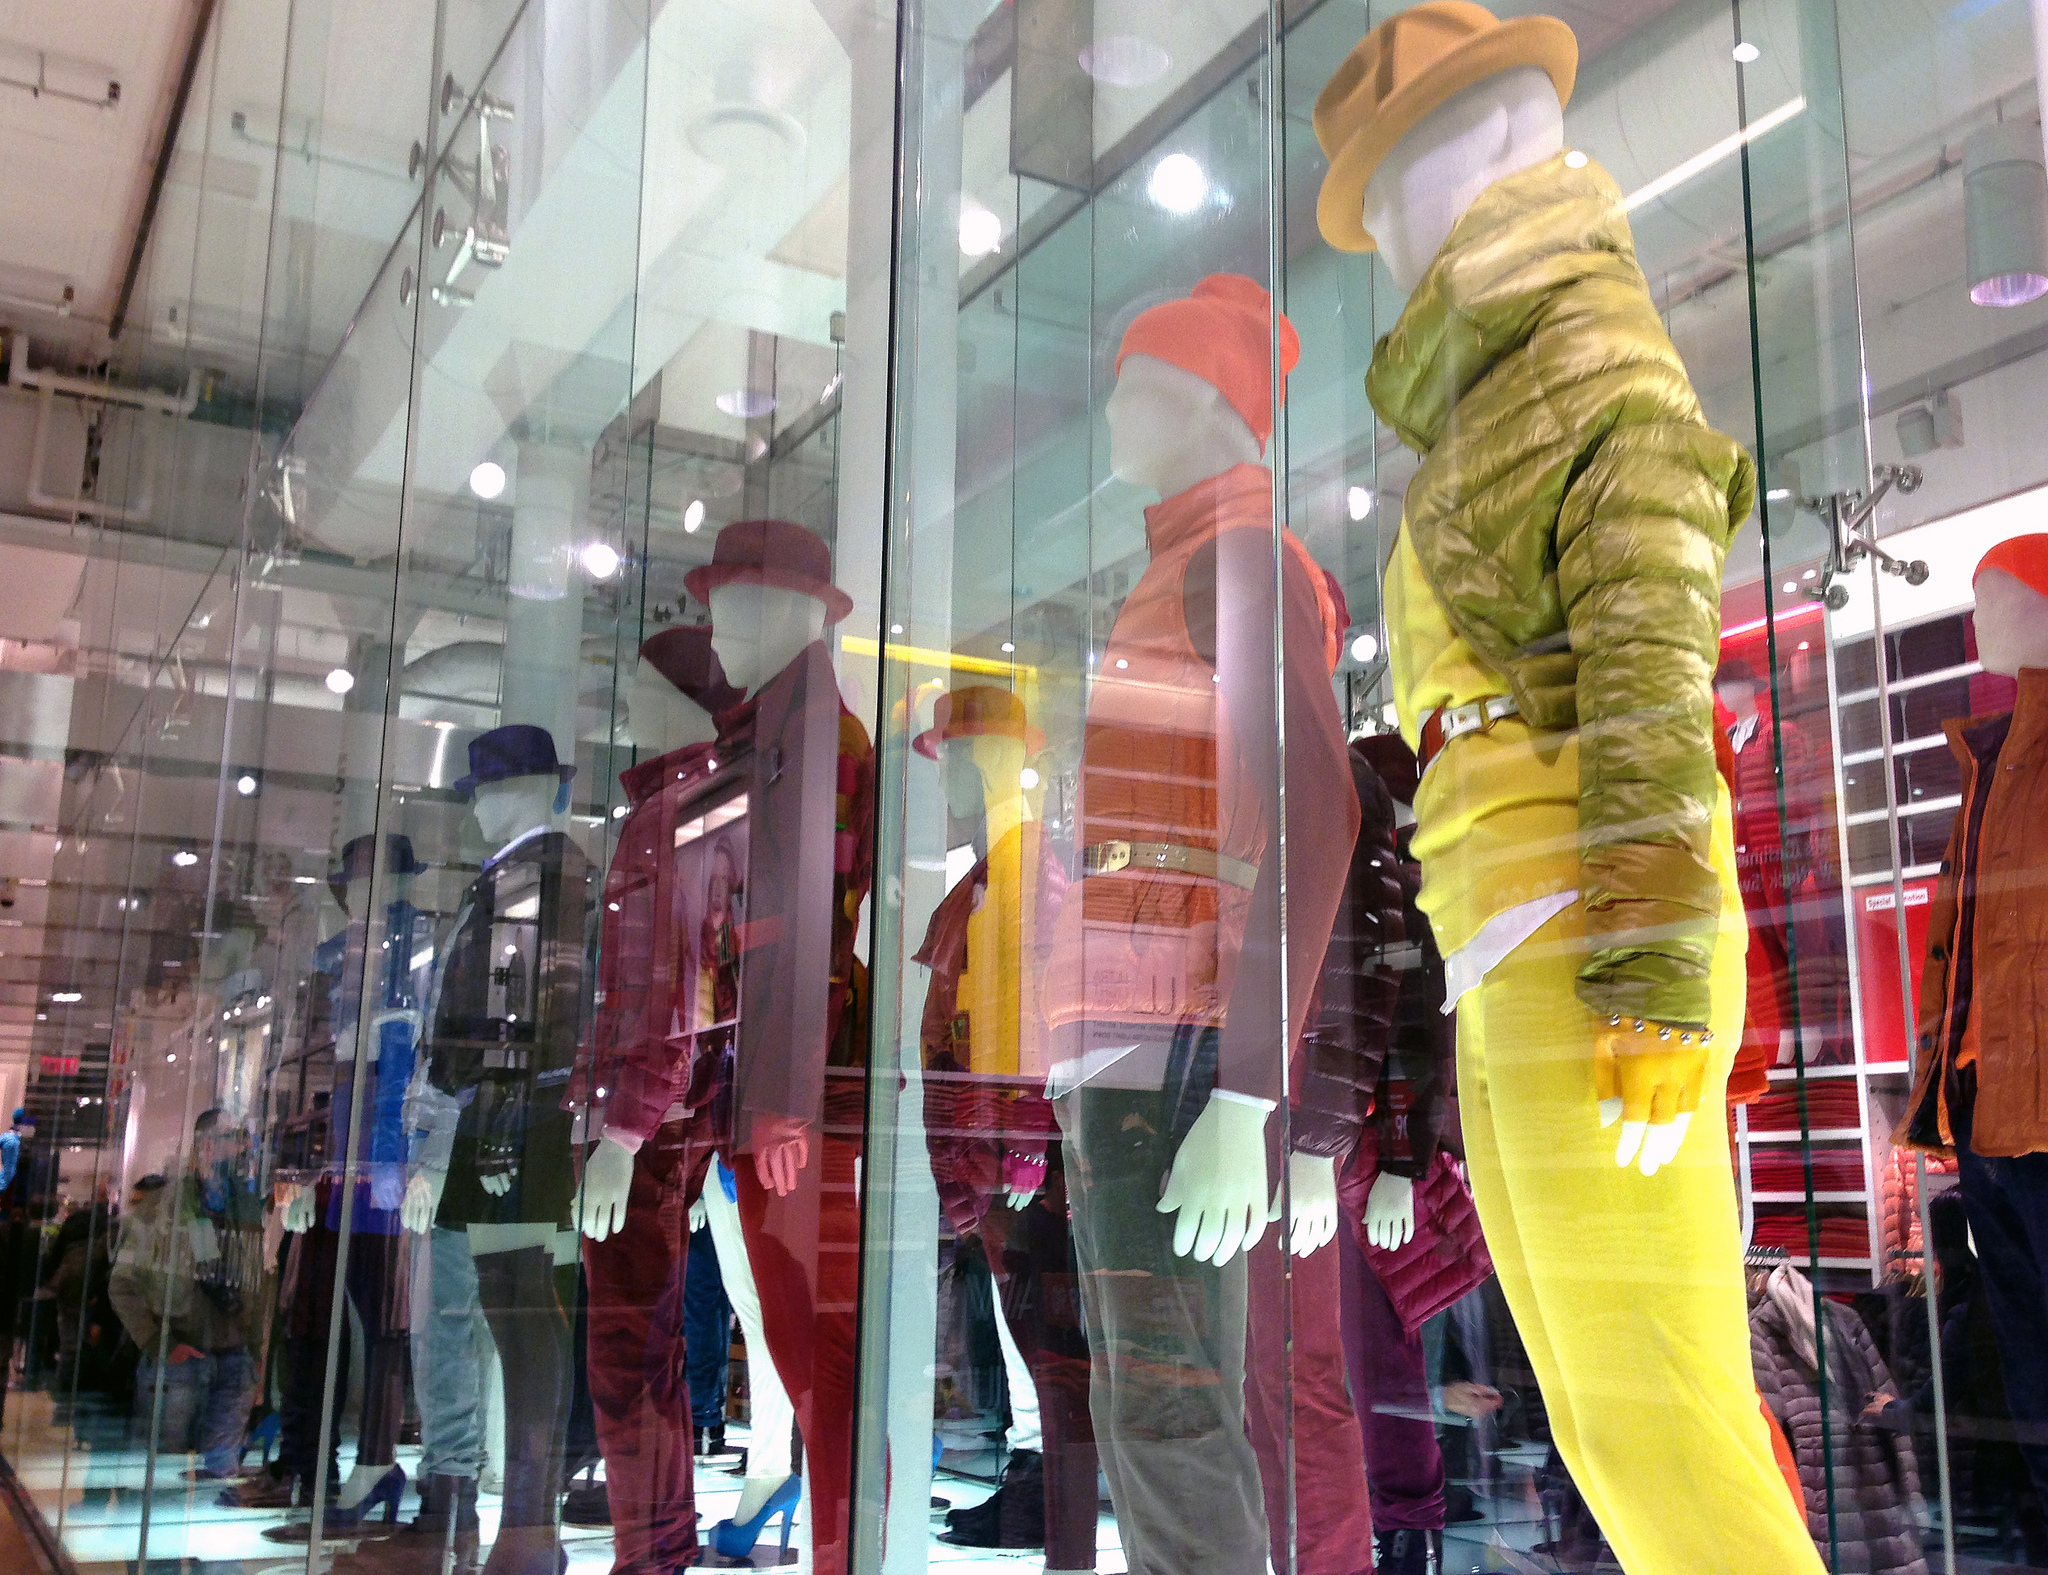 Display at Uniqlo in New York.